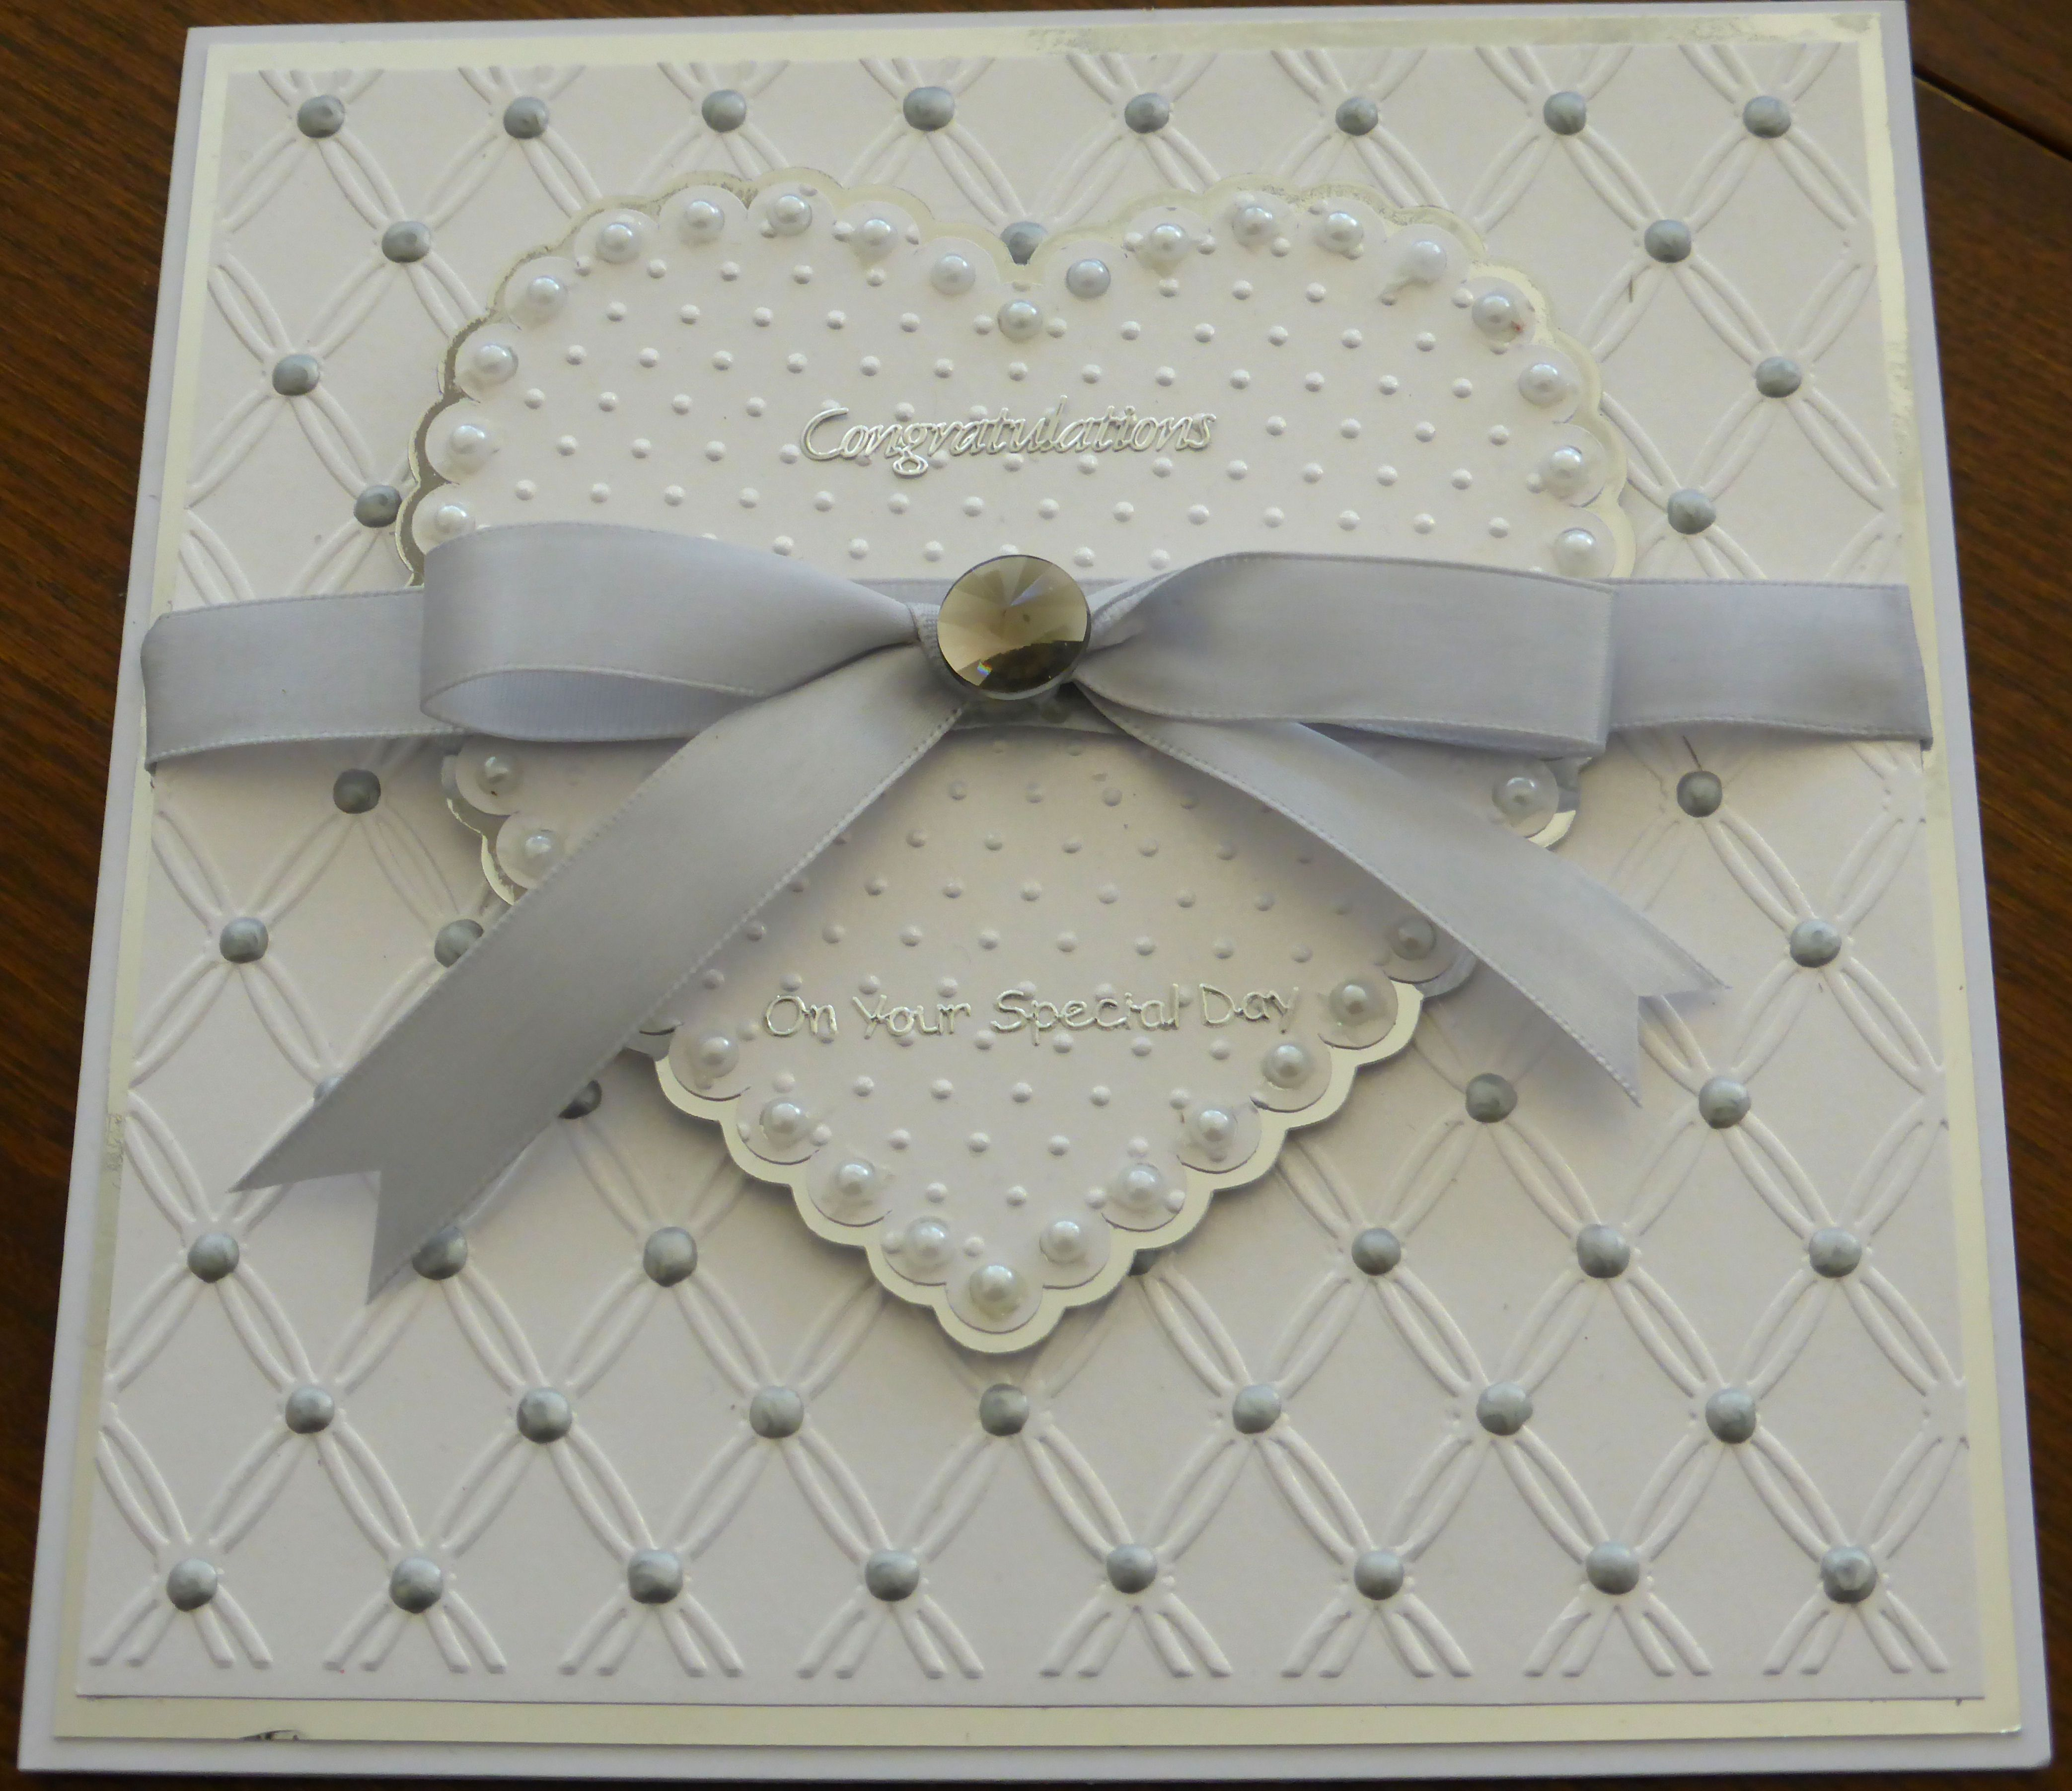 Made using Creative Expressions Embossing folder called Tied Together, Spellbinders Heart Die and Cricut Polka Dots Embossing Folder